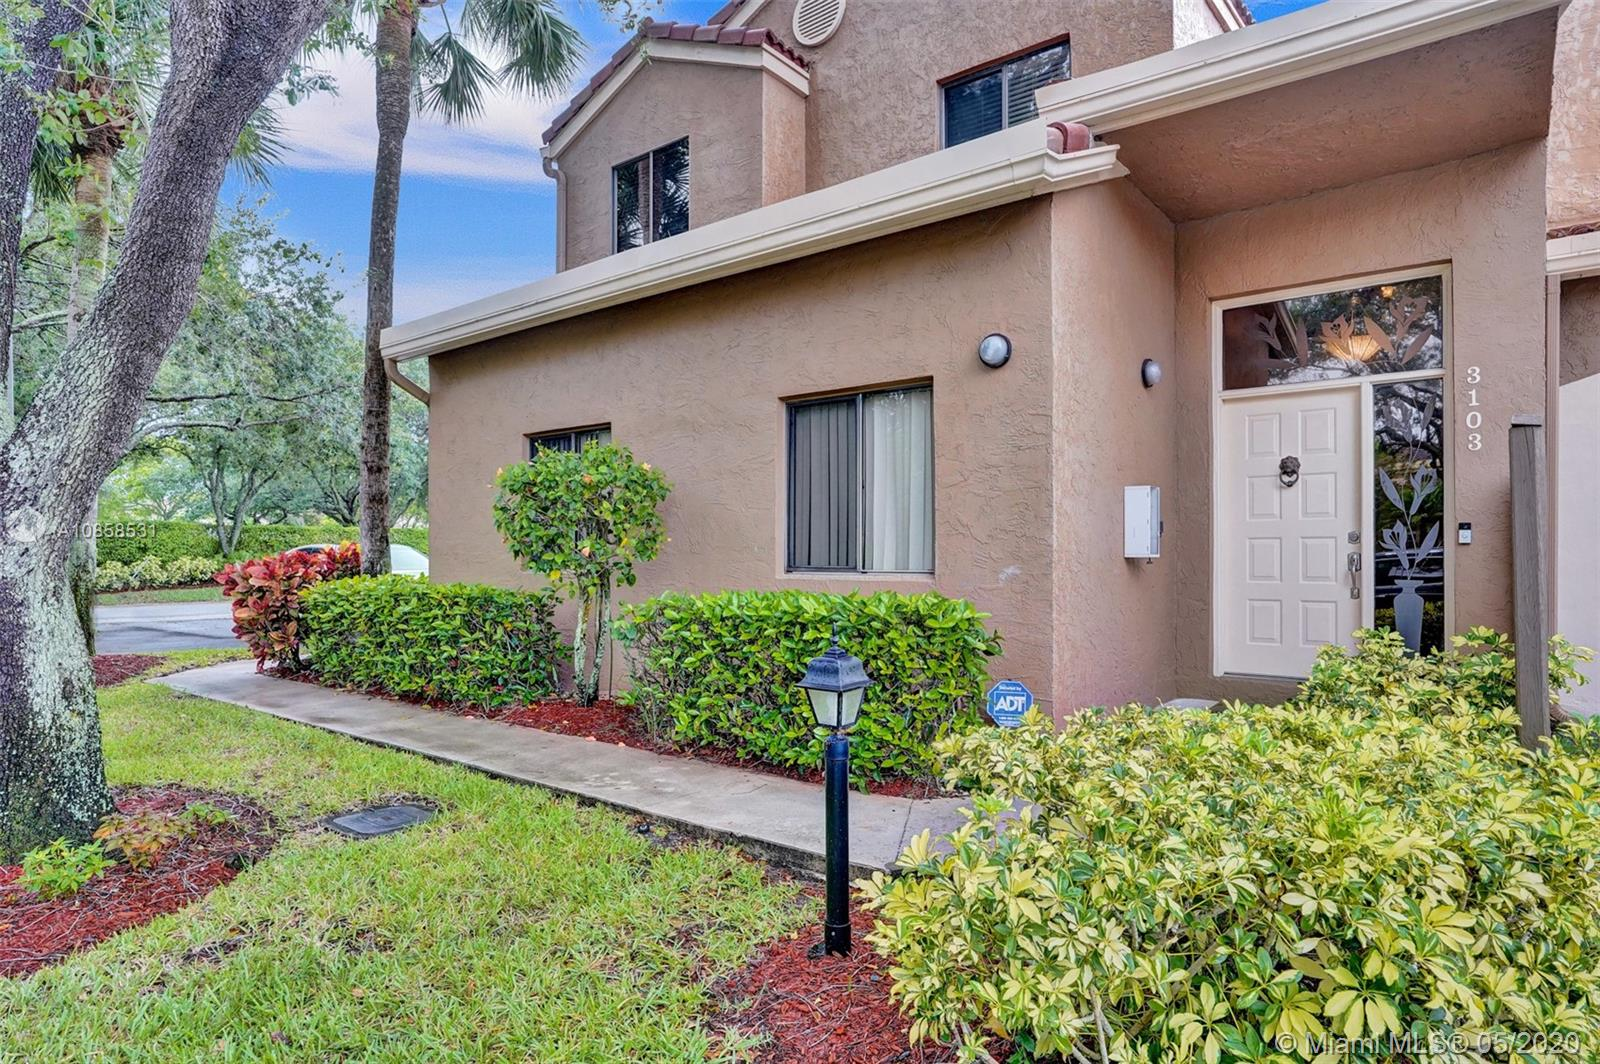 STUNNING, UPGRADED 3 BR/1 CG PARKLAND CARRIAGE HOME . NEWER CABINETS, SS APPLIANCES, TILE ON THE DIAGONAL EXCEPT CARPETED MBR, CUSTOM WINDOW TREATMENTS, AND COVERED, SCREENED BALCONY. EXTRA PARKING SPACE. NEWER AC (4 YRS.,) NEW HW TANK.  COMMUNITY SALT-WATER POOL AND CLUBHOUSE WITH PARTY ROOM/KITCHEN FOR RESIDENTS' SPECIAL OCCASIONS.  ACROSS THE STREET FROM HUGE TERRAMAR PARK WITH BASEBALL, BASKETBALL, SOCCER, PICKLE BALL, TENNIS, JOGGING TRAILS AND PLAYGROUND/PICNIC/BARBECUE AREAS. BEST SCHOOLS IN BROWARD COUNTY! SHOWINGS START SATURDAY 5/16. CALL LA FOR APPOINTMENT.